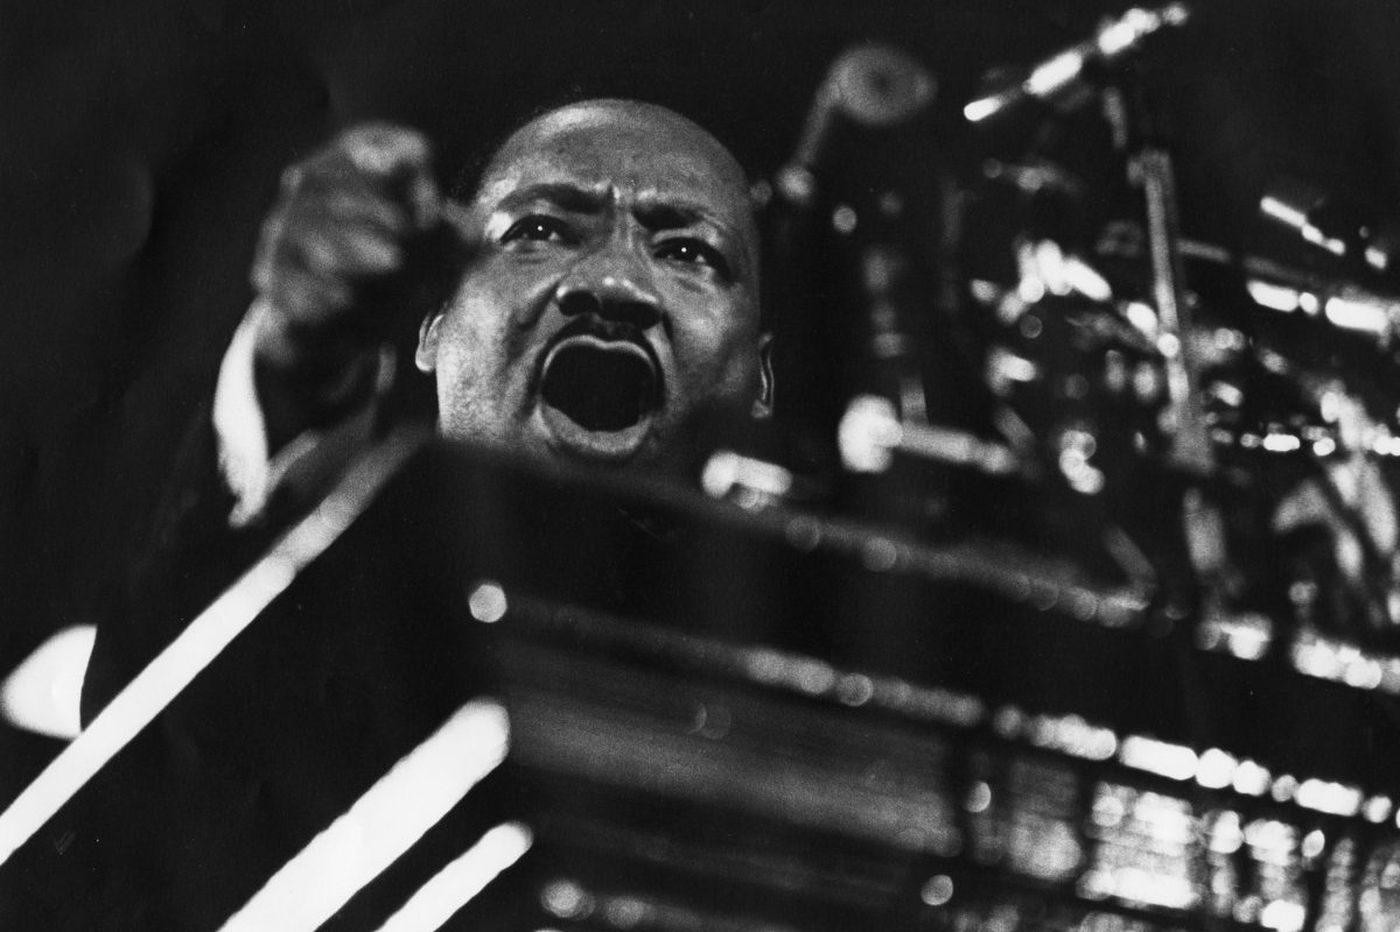 Finding inspiration from Martin Luther King Jr.'s religious legacy | Opinion